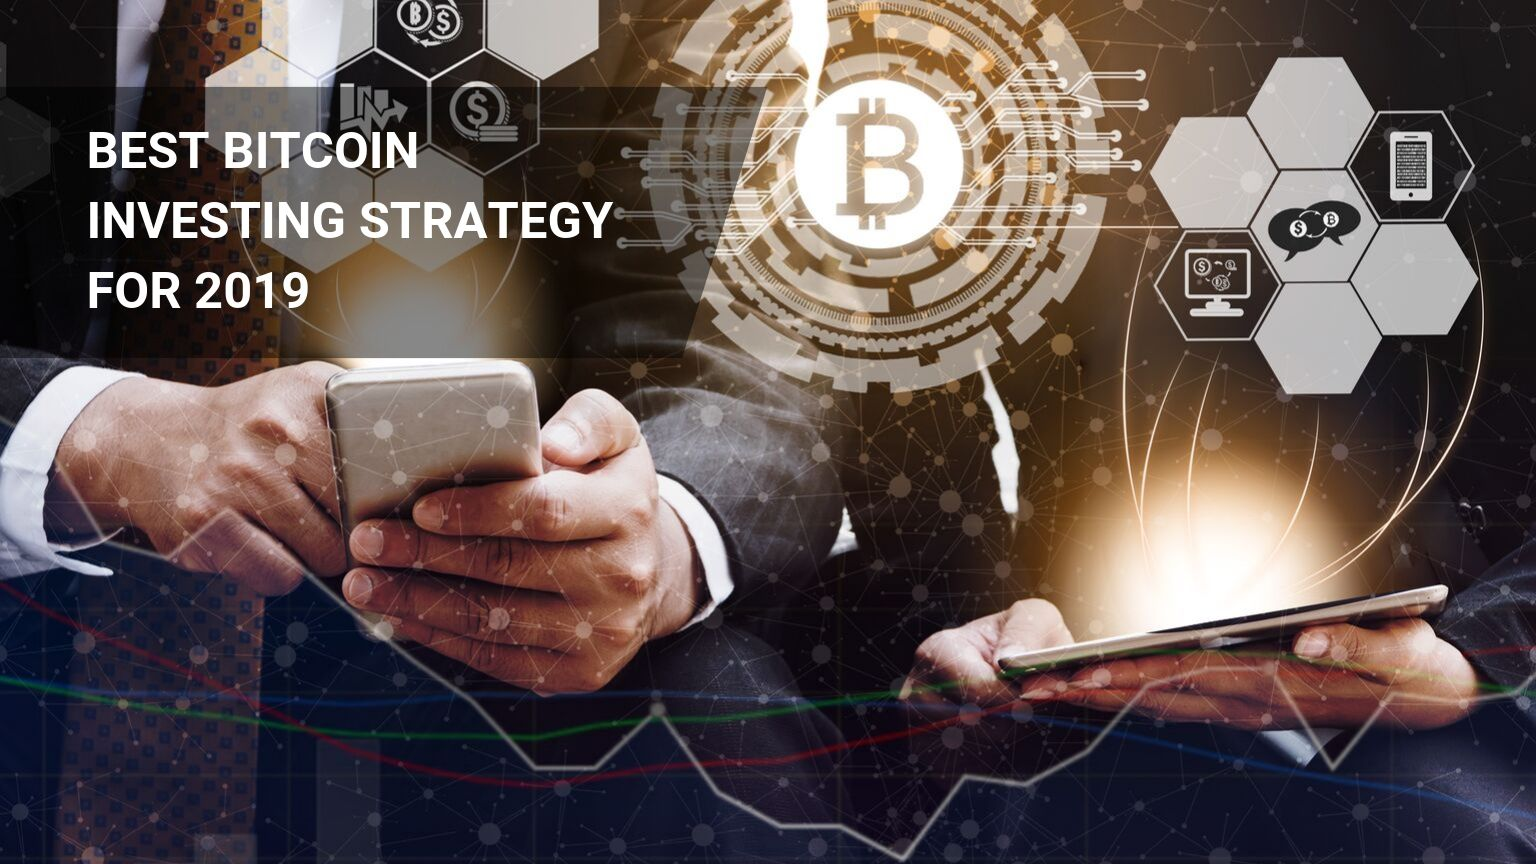 Best Bitcoin Investing Strategy for 2019